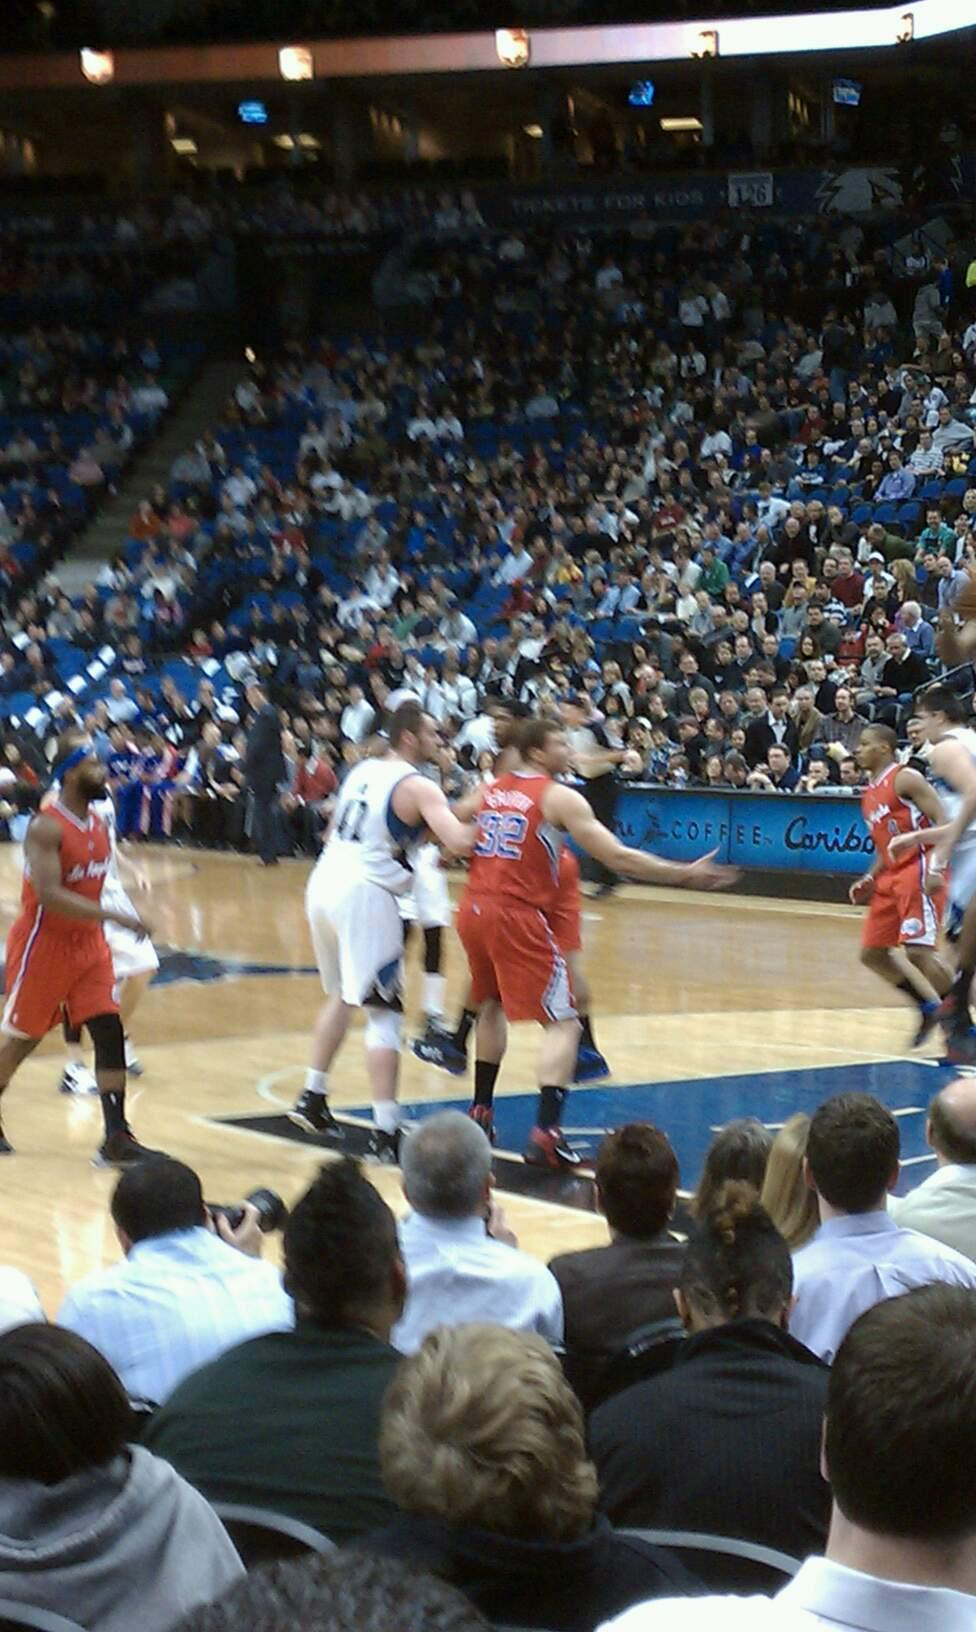 Target Center Section 106 Row 7 Seat 2